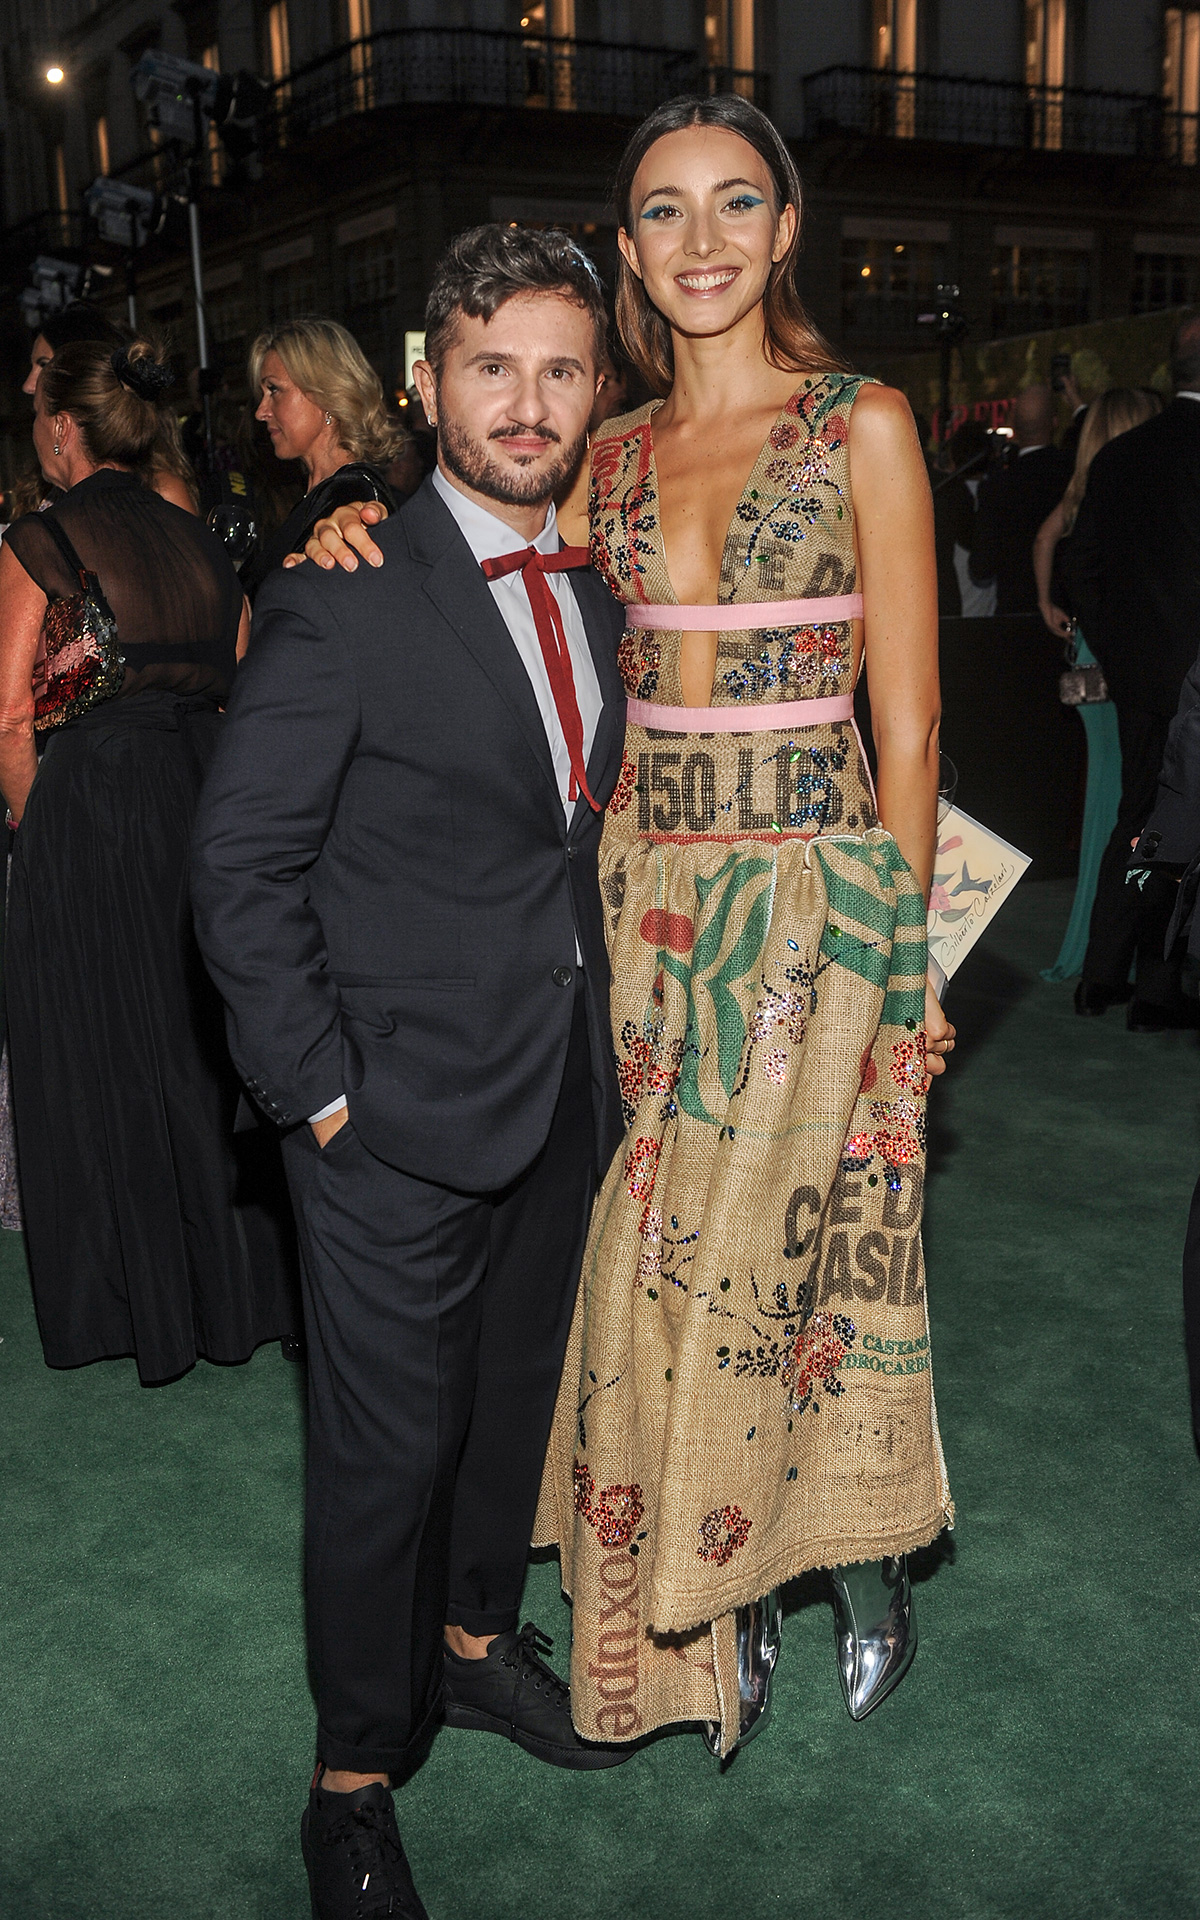 Gilberto Calzolari posing with Federica Delsale at the Green Carpet Challenge Awards